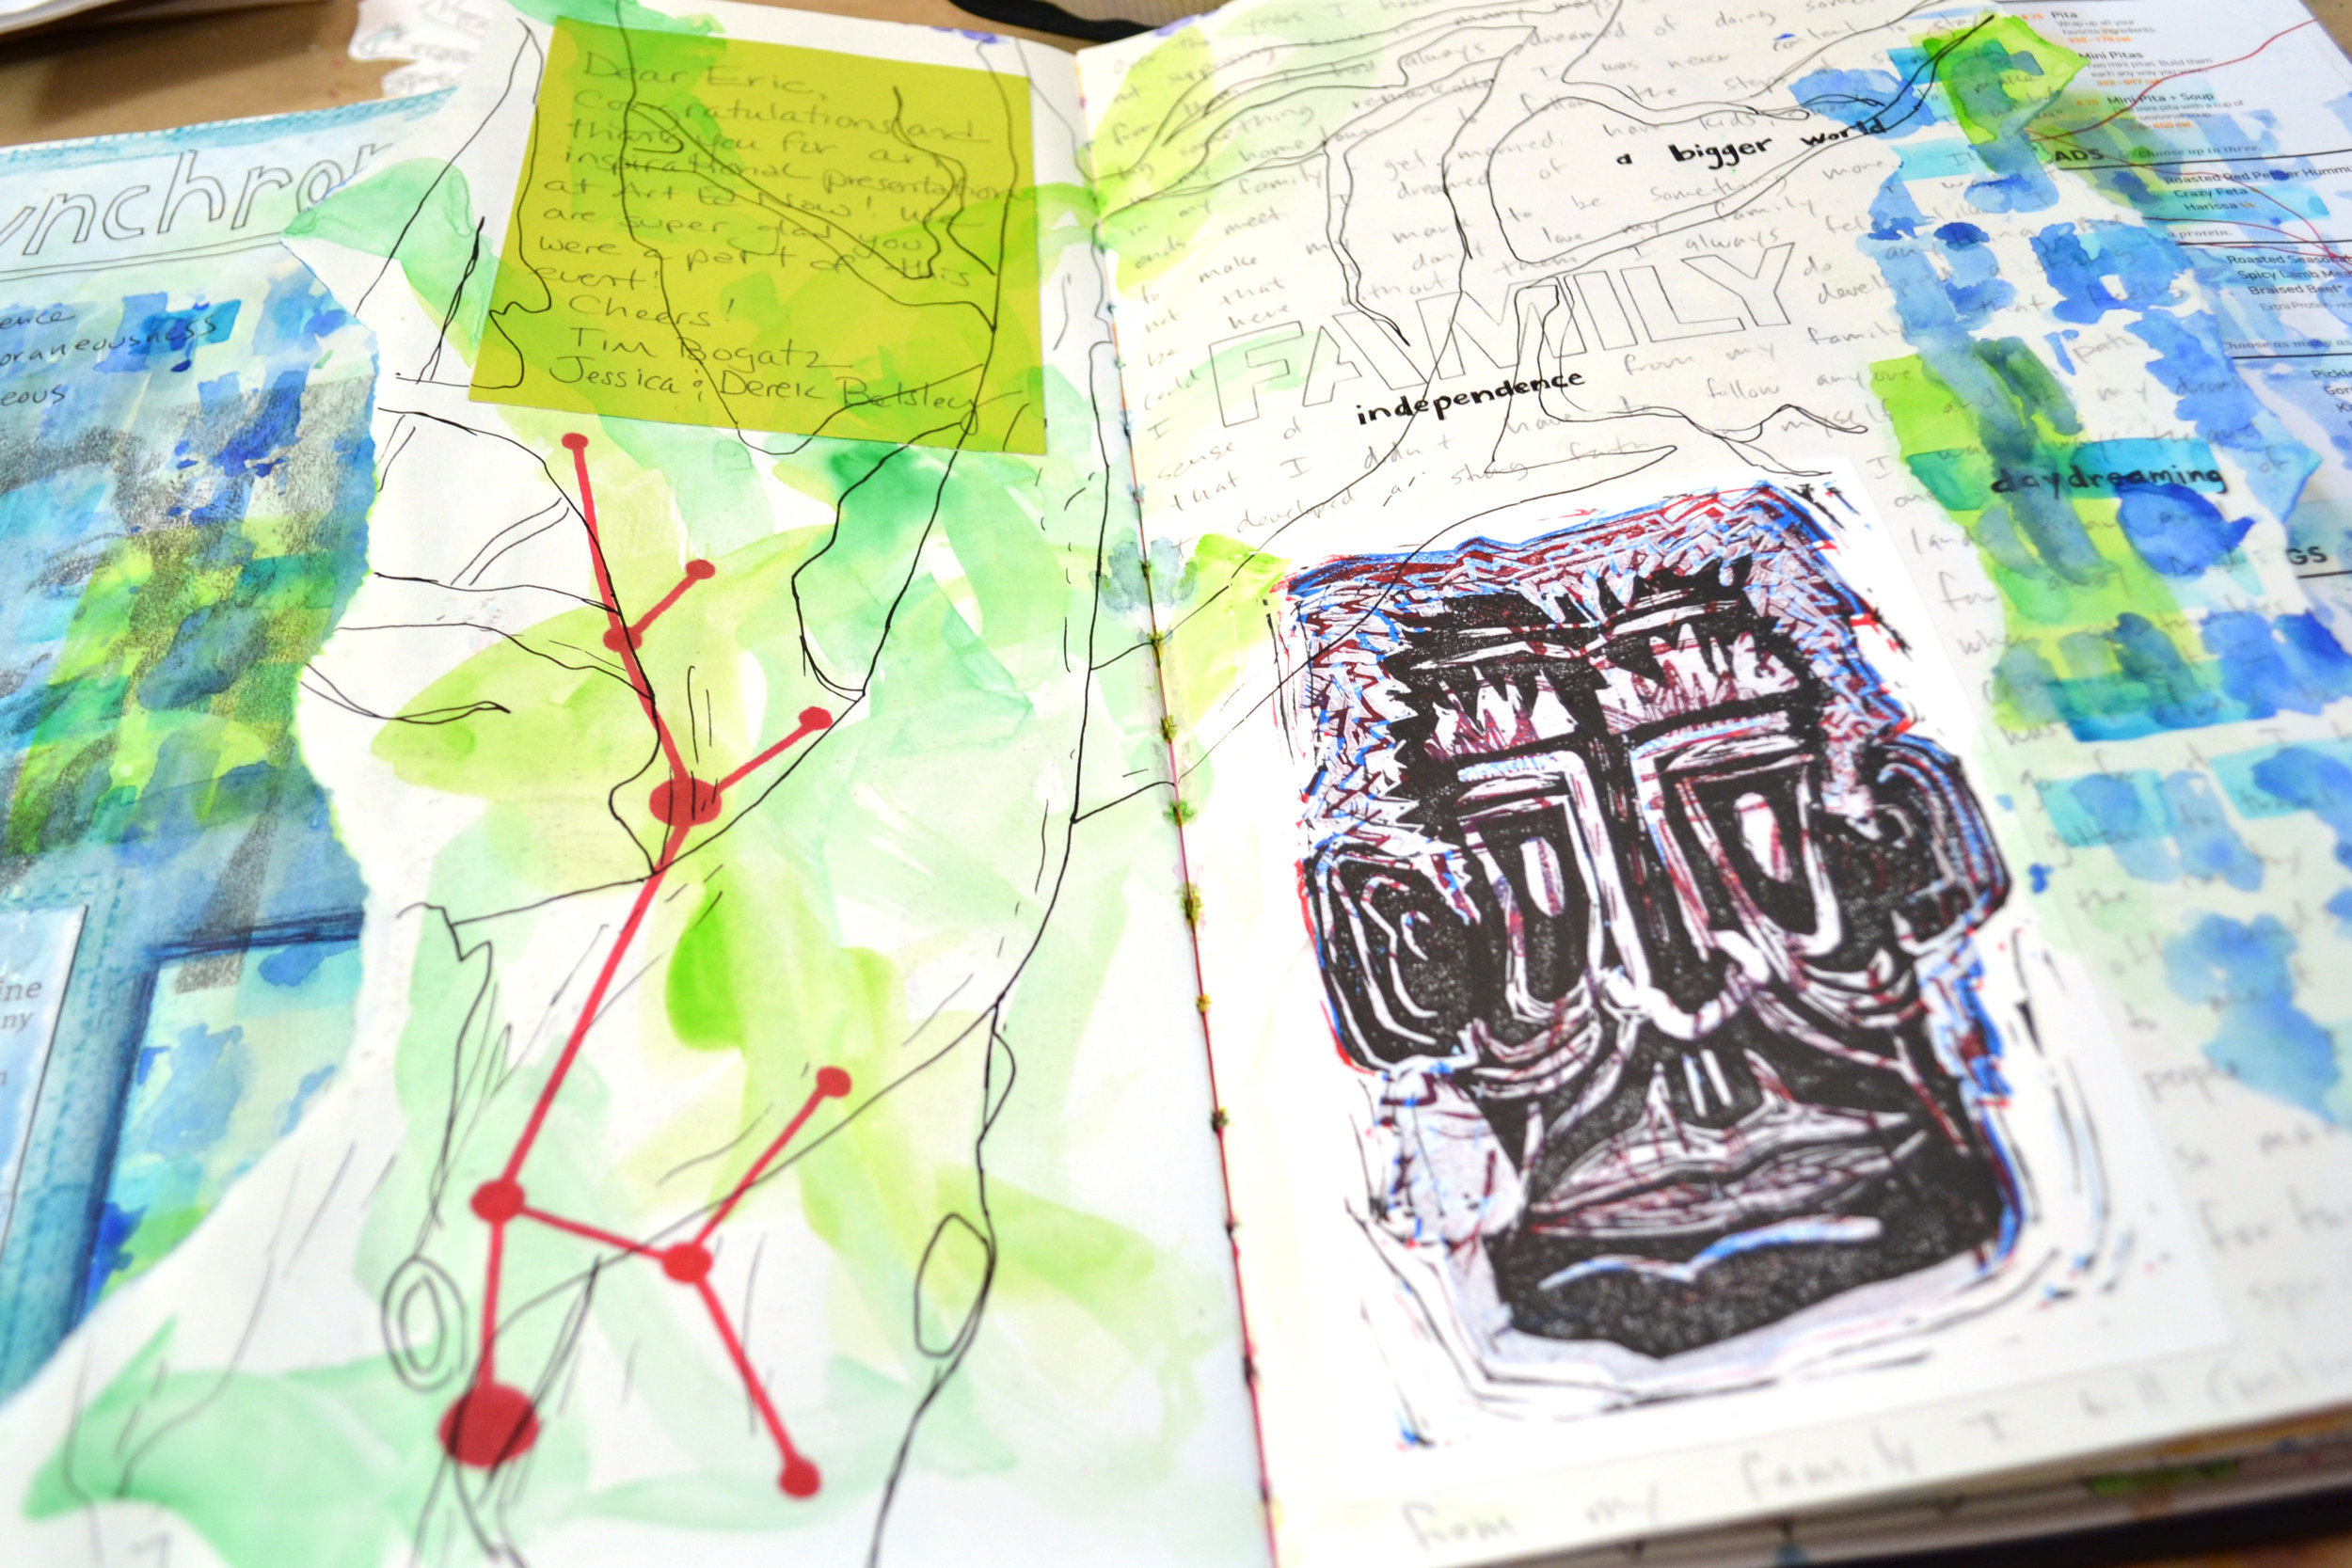 Observation Drawing: Trees